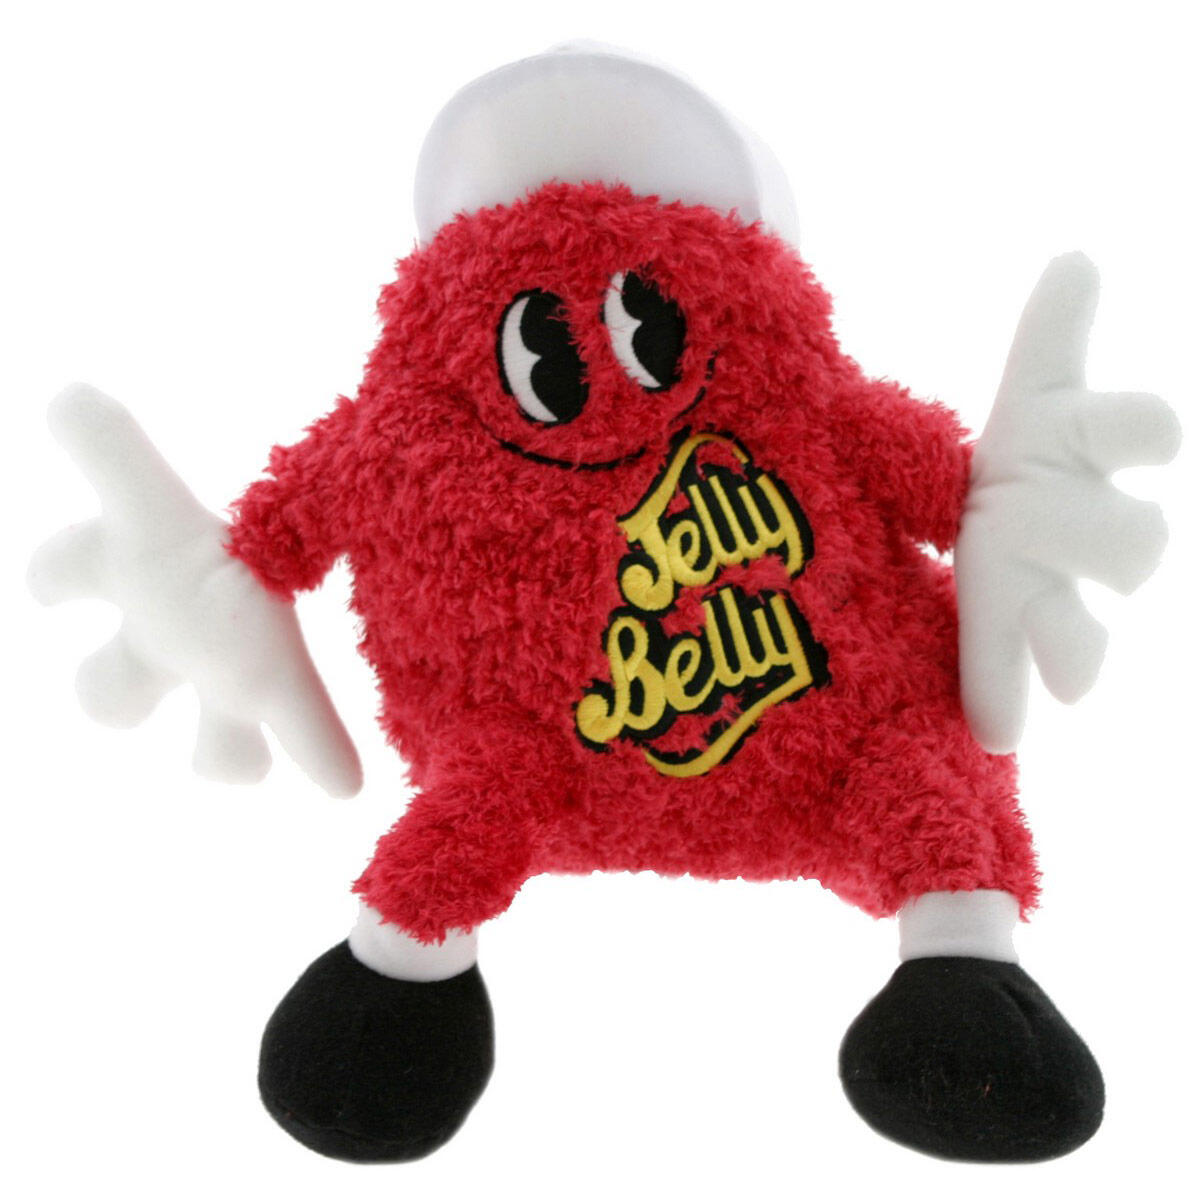 Mr. Jelly Belly Chenille Plush